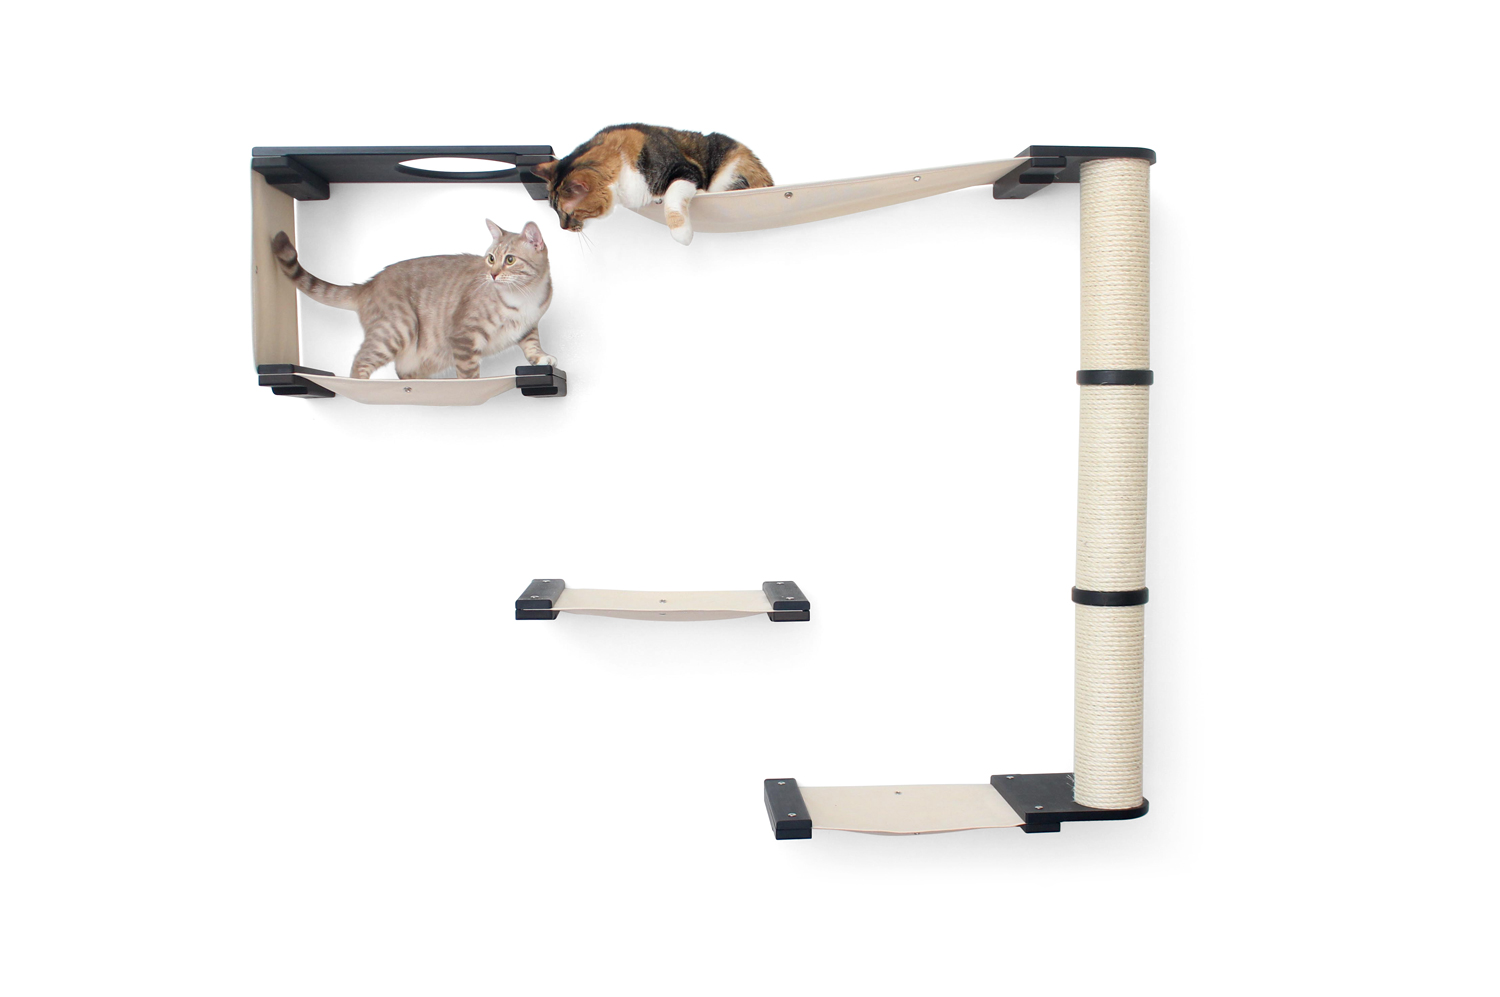 wall mounted cat climb with tan cat and calico cat